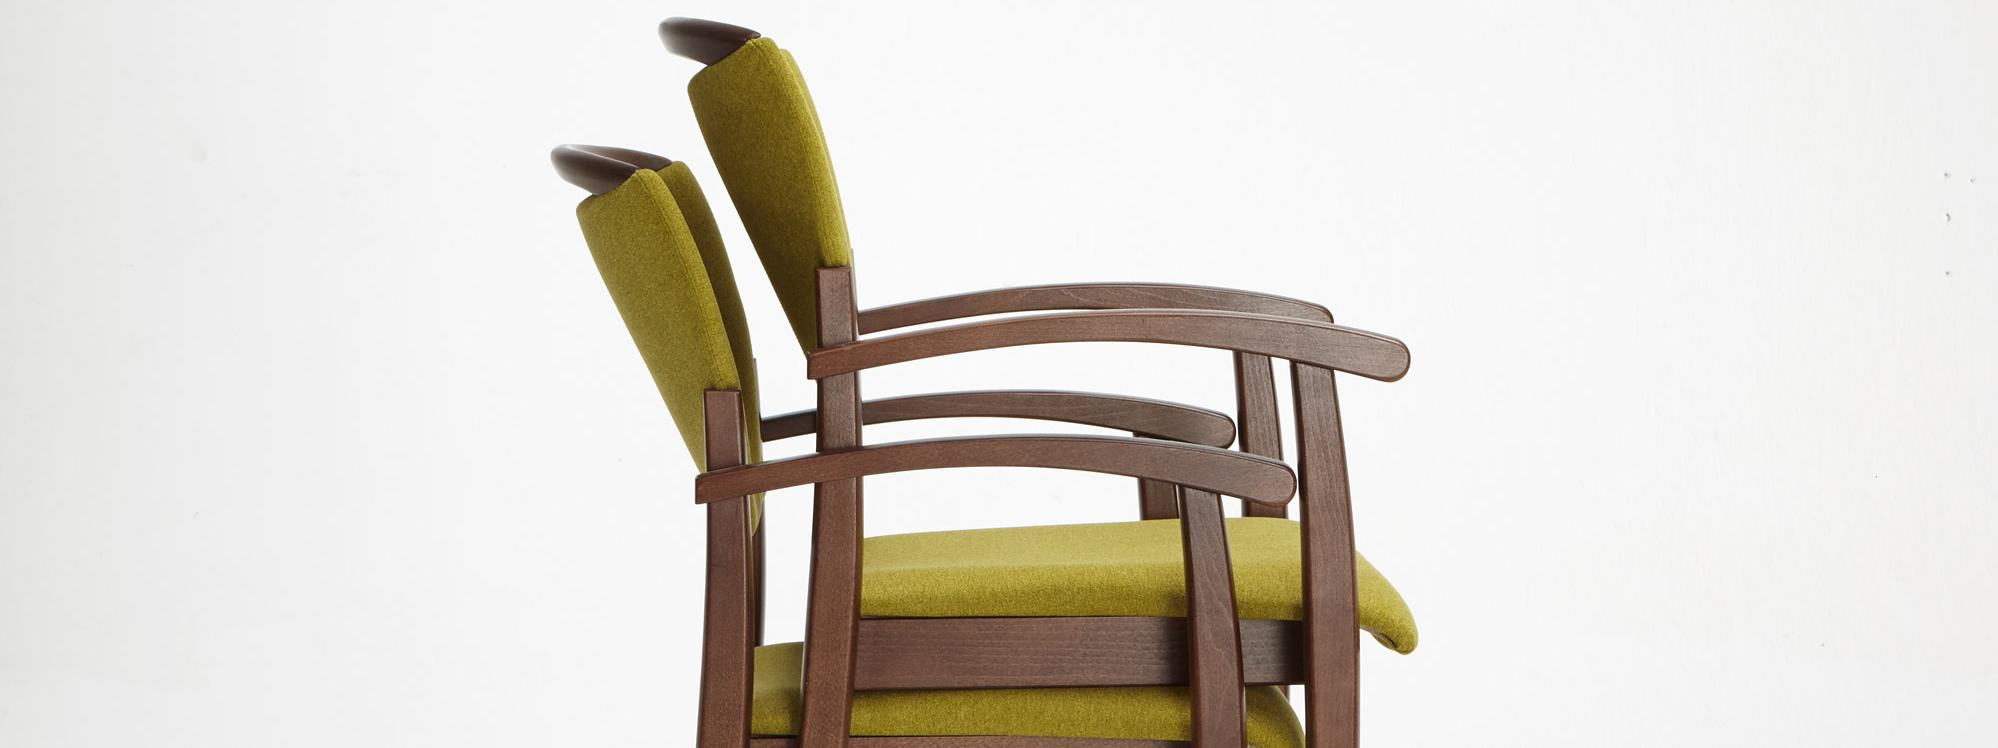 Stackable Fena chairs facilitate room cleaning